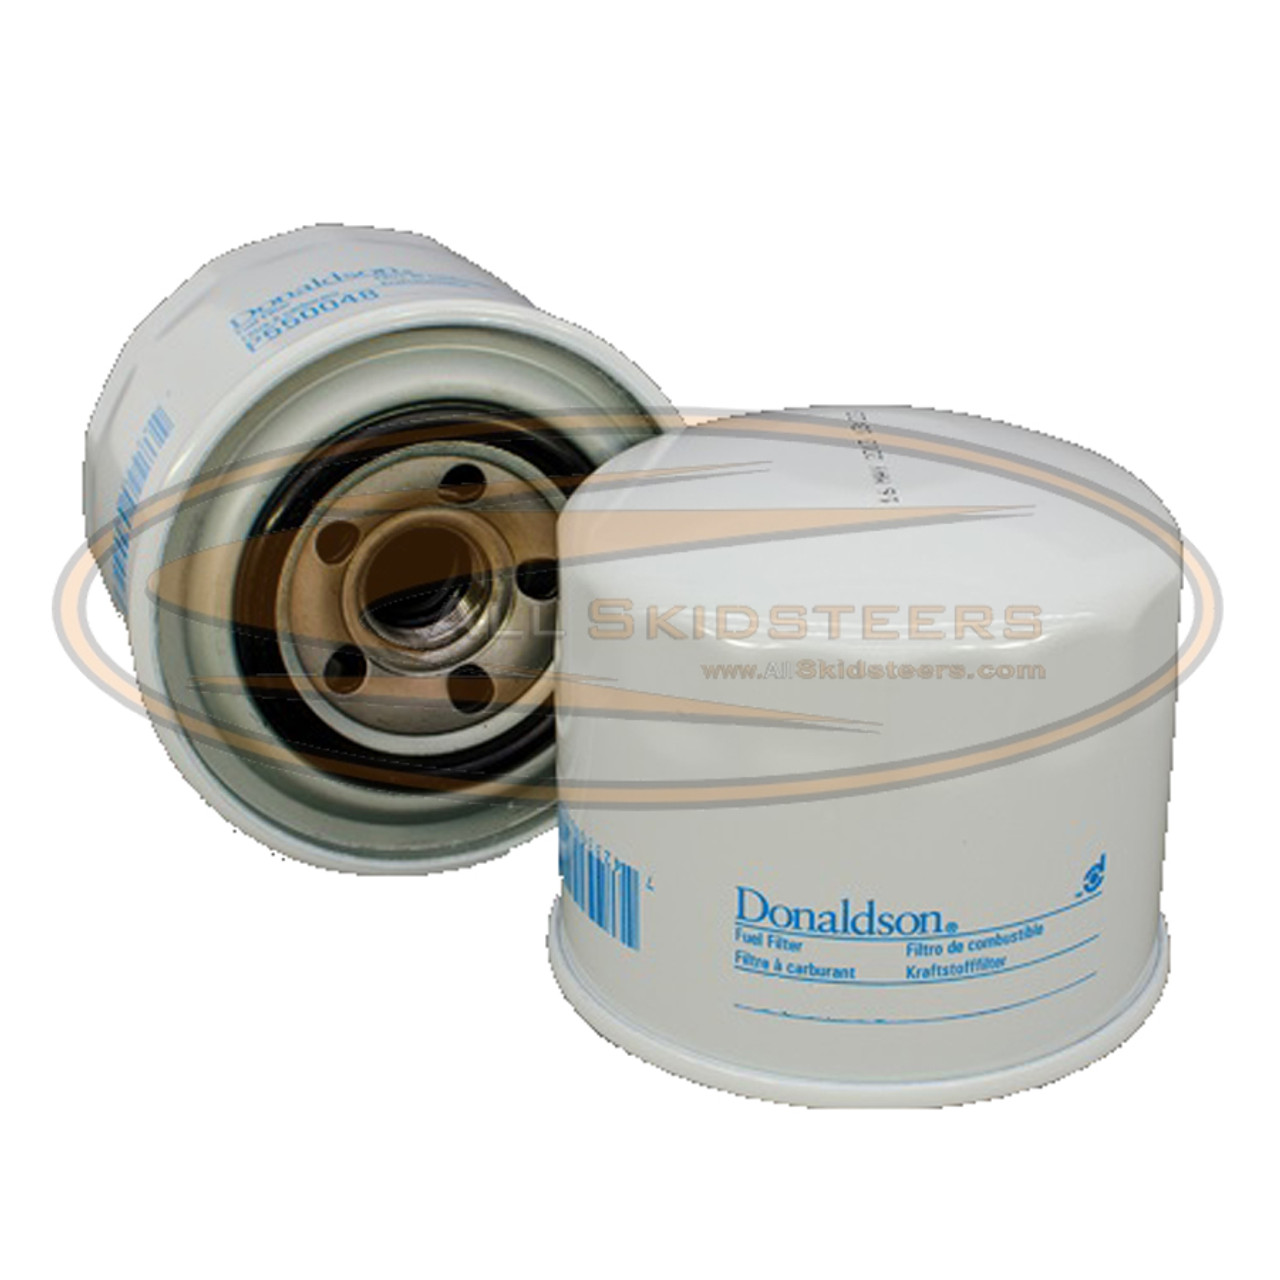 Fuel Filter for Takeuchi | Replaces OEM # Y129907-55801 - All Skidsteers,  Inc.AllSkidsteers